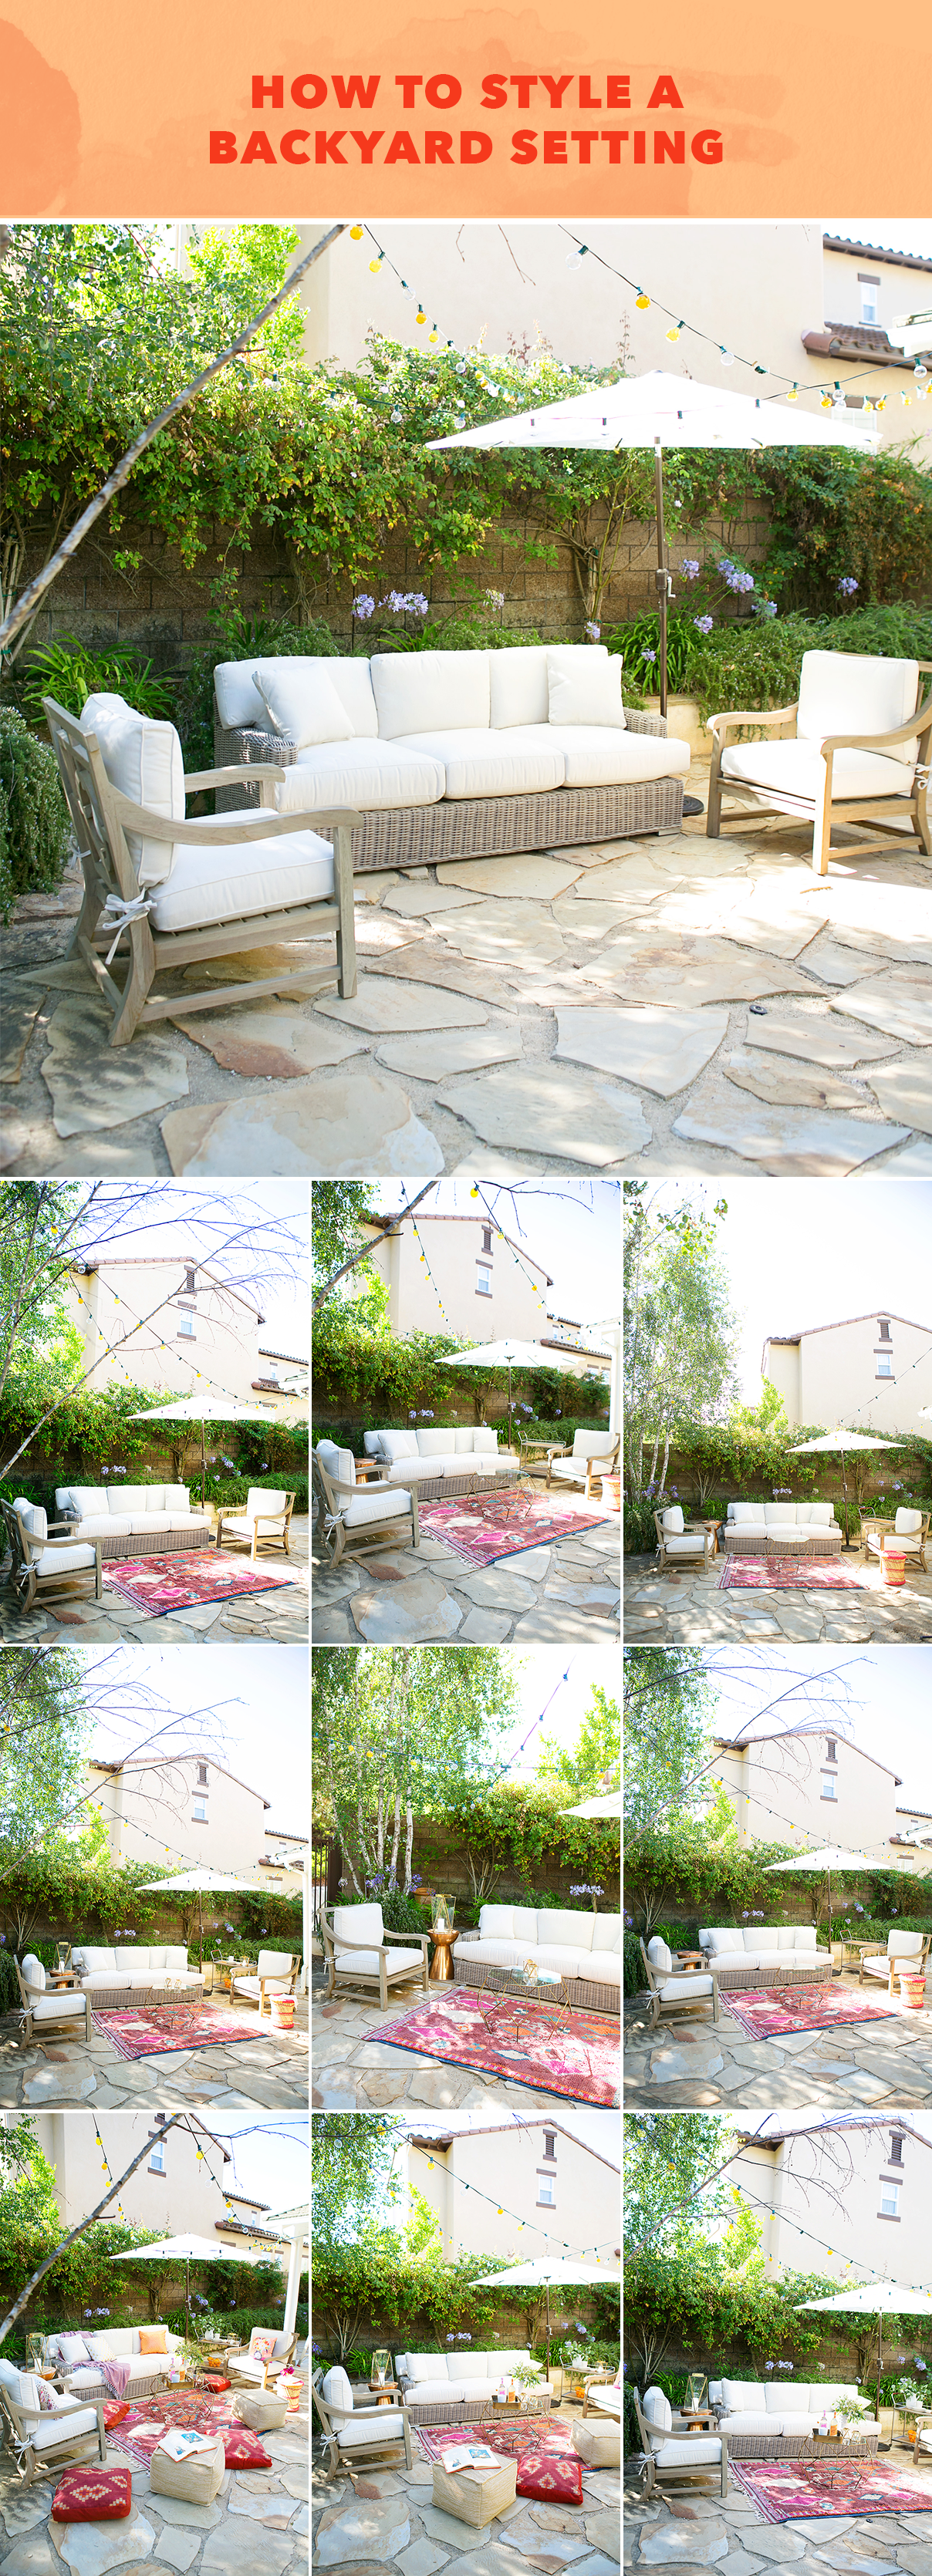 How to style a backyard setting